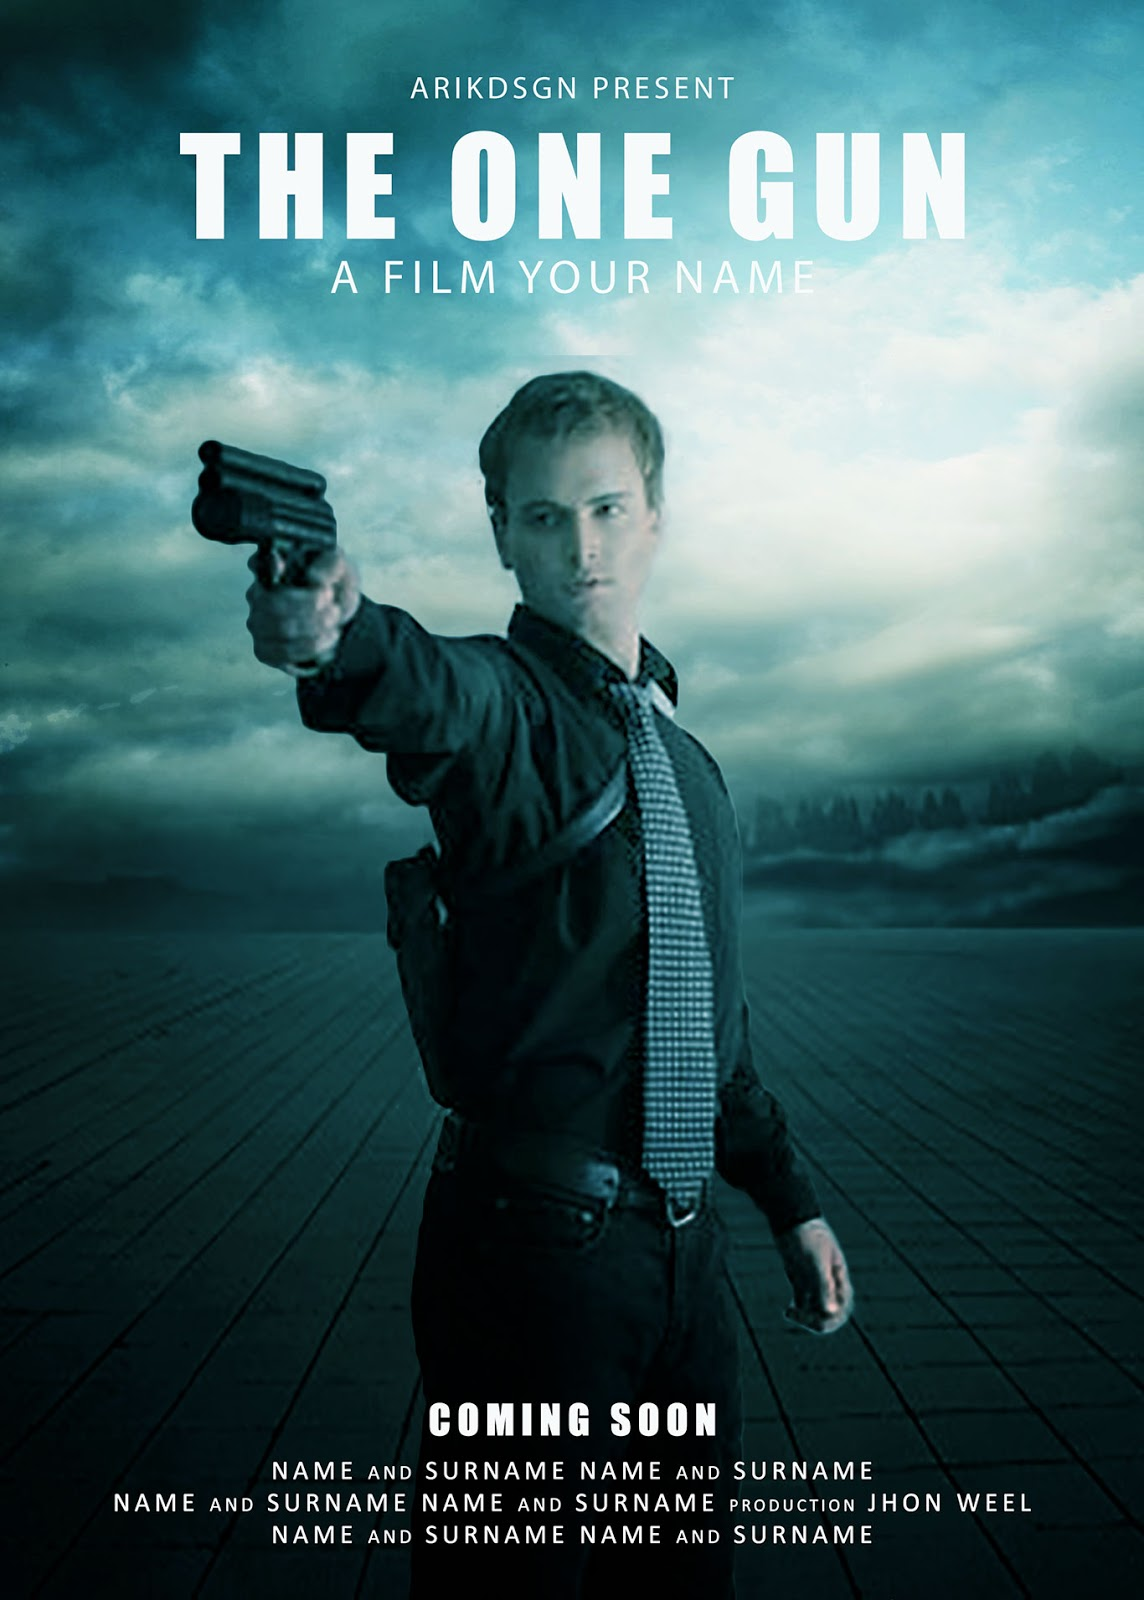 Poster design in photoshop - Today I Will Try Create A Movie Poster Design With Title The One Gun In Photoshop Cc 2015 To Work With Layer Mask Blending Option And Adjustment Color